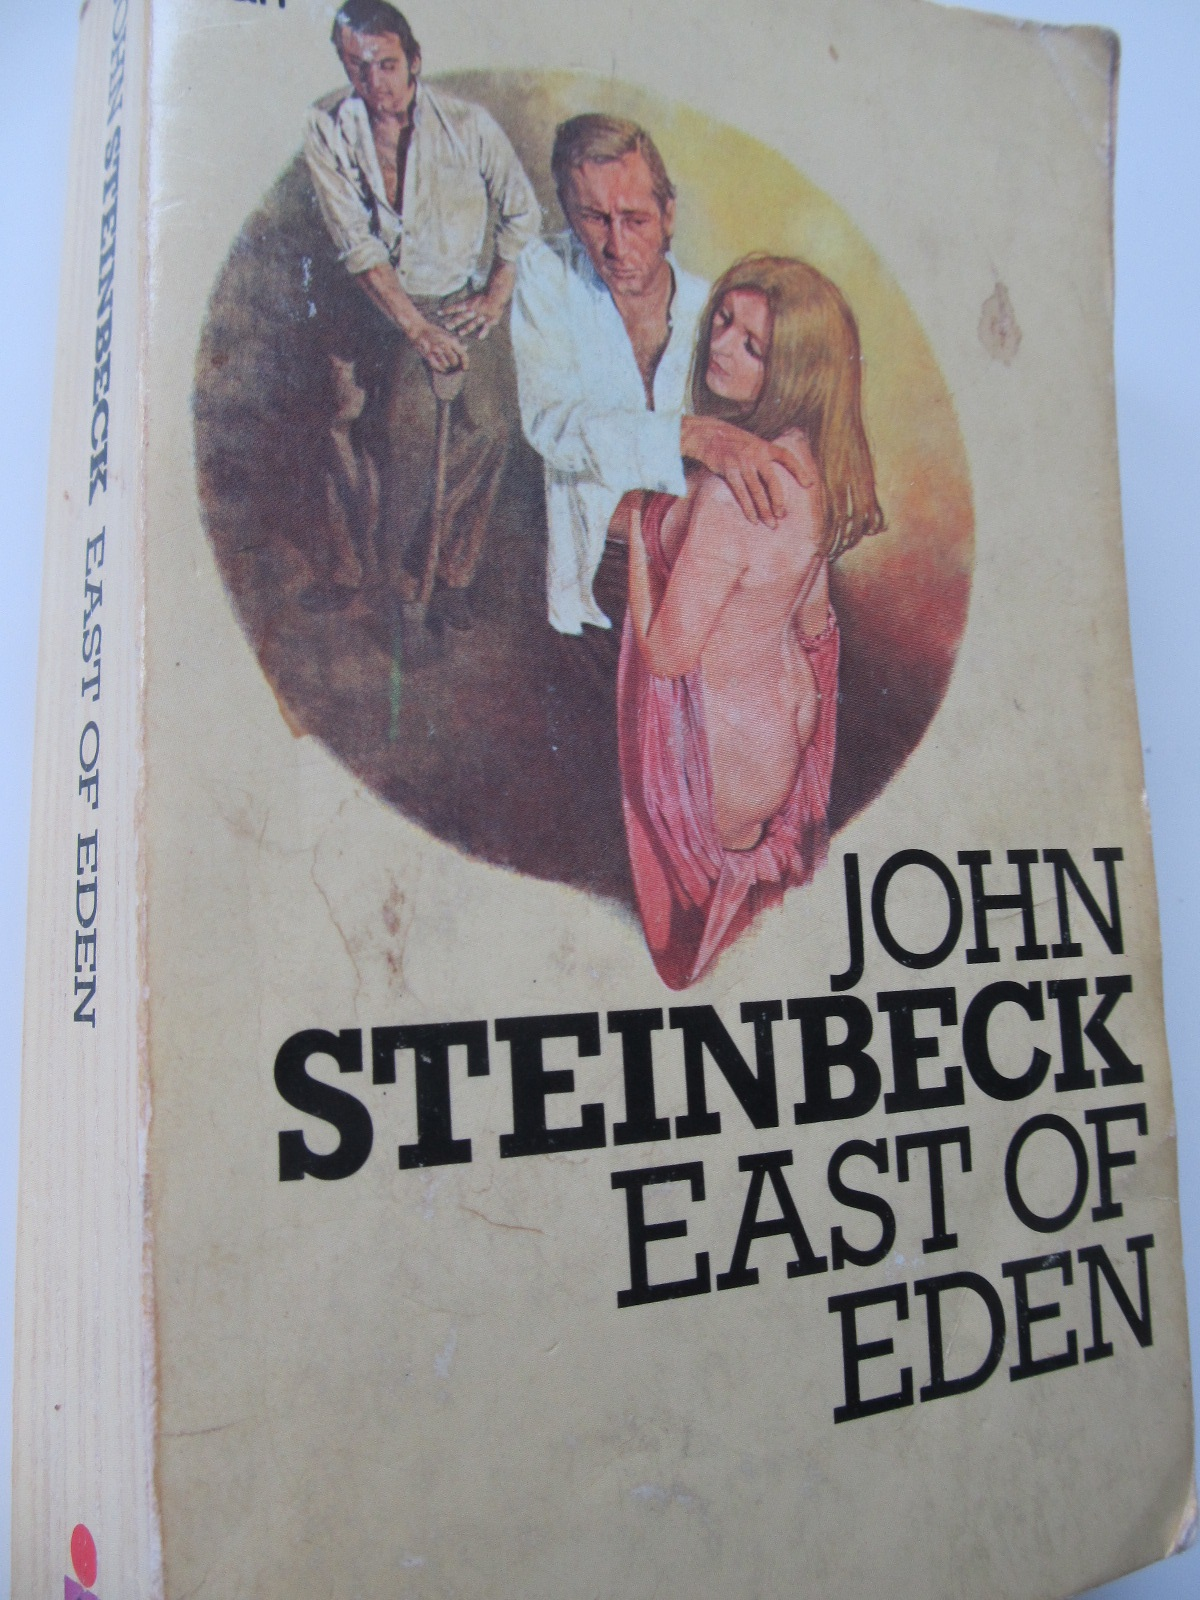 East of Eden - John Steinbeck | Detalii carte